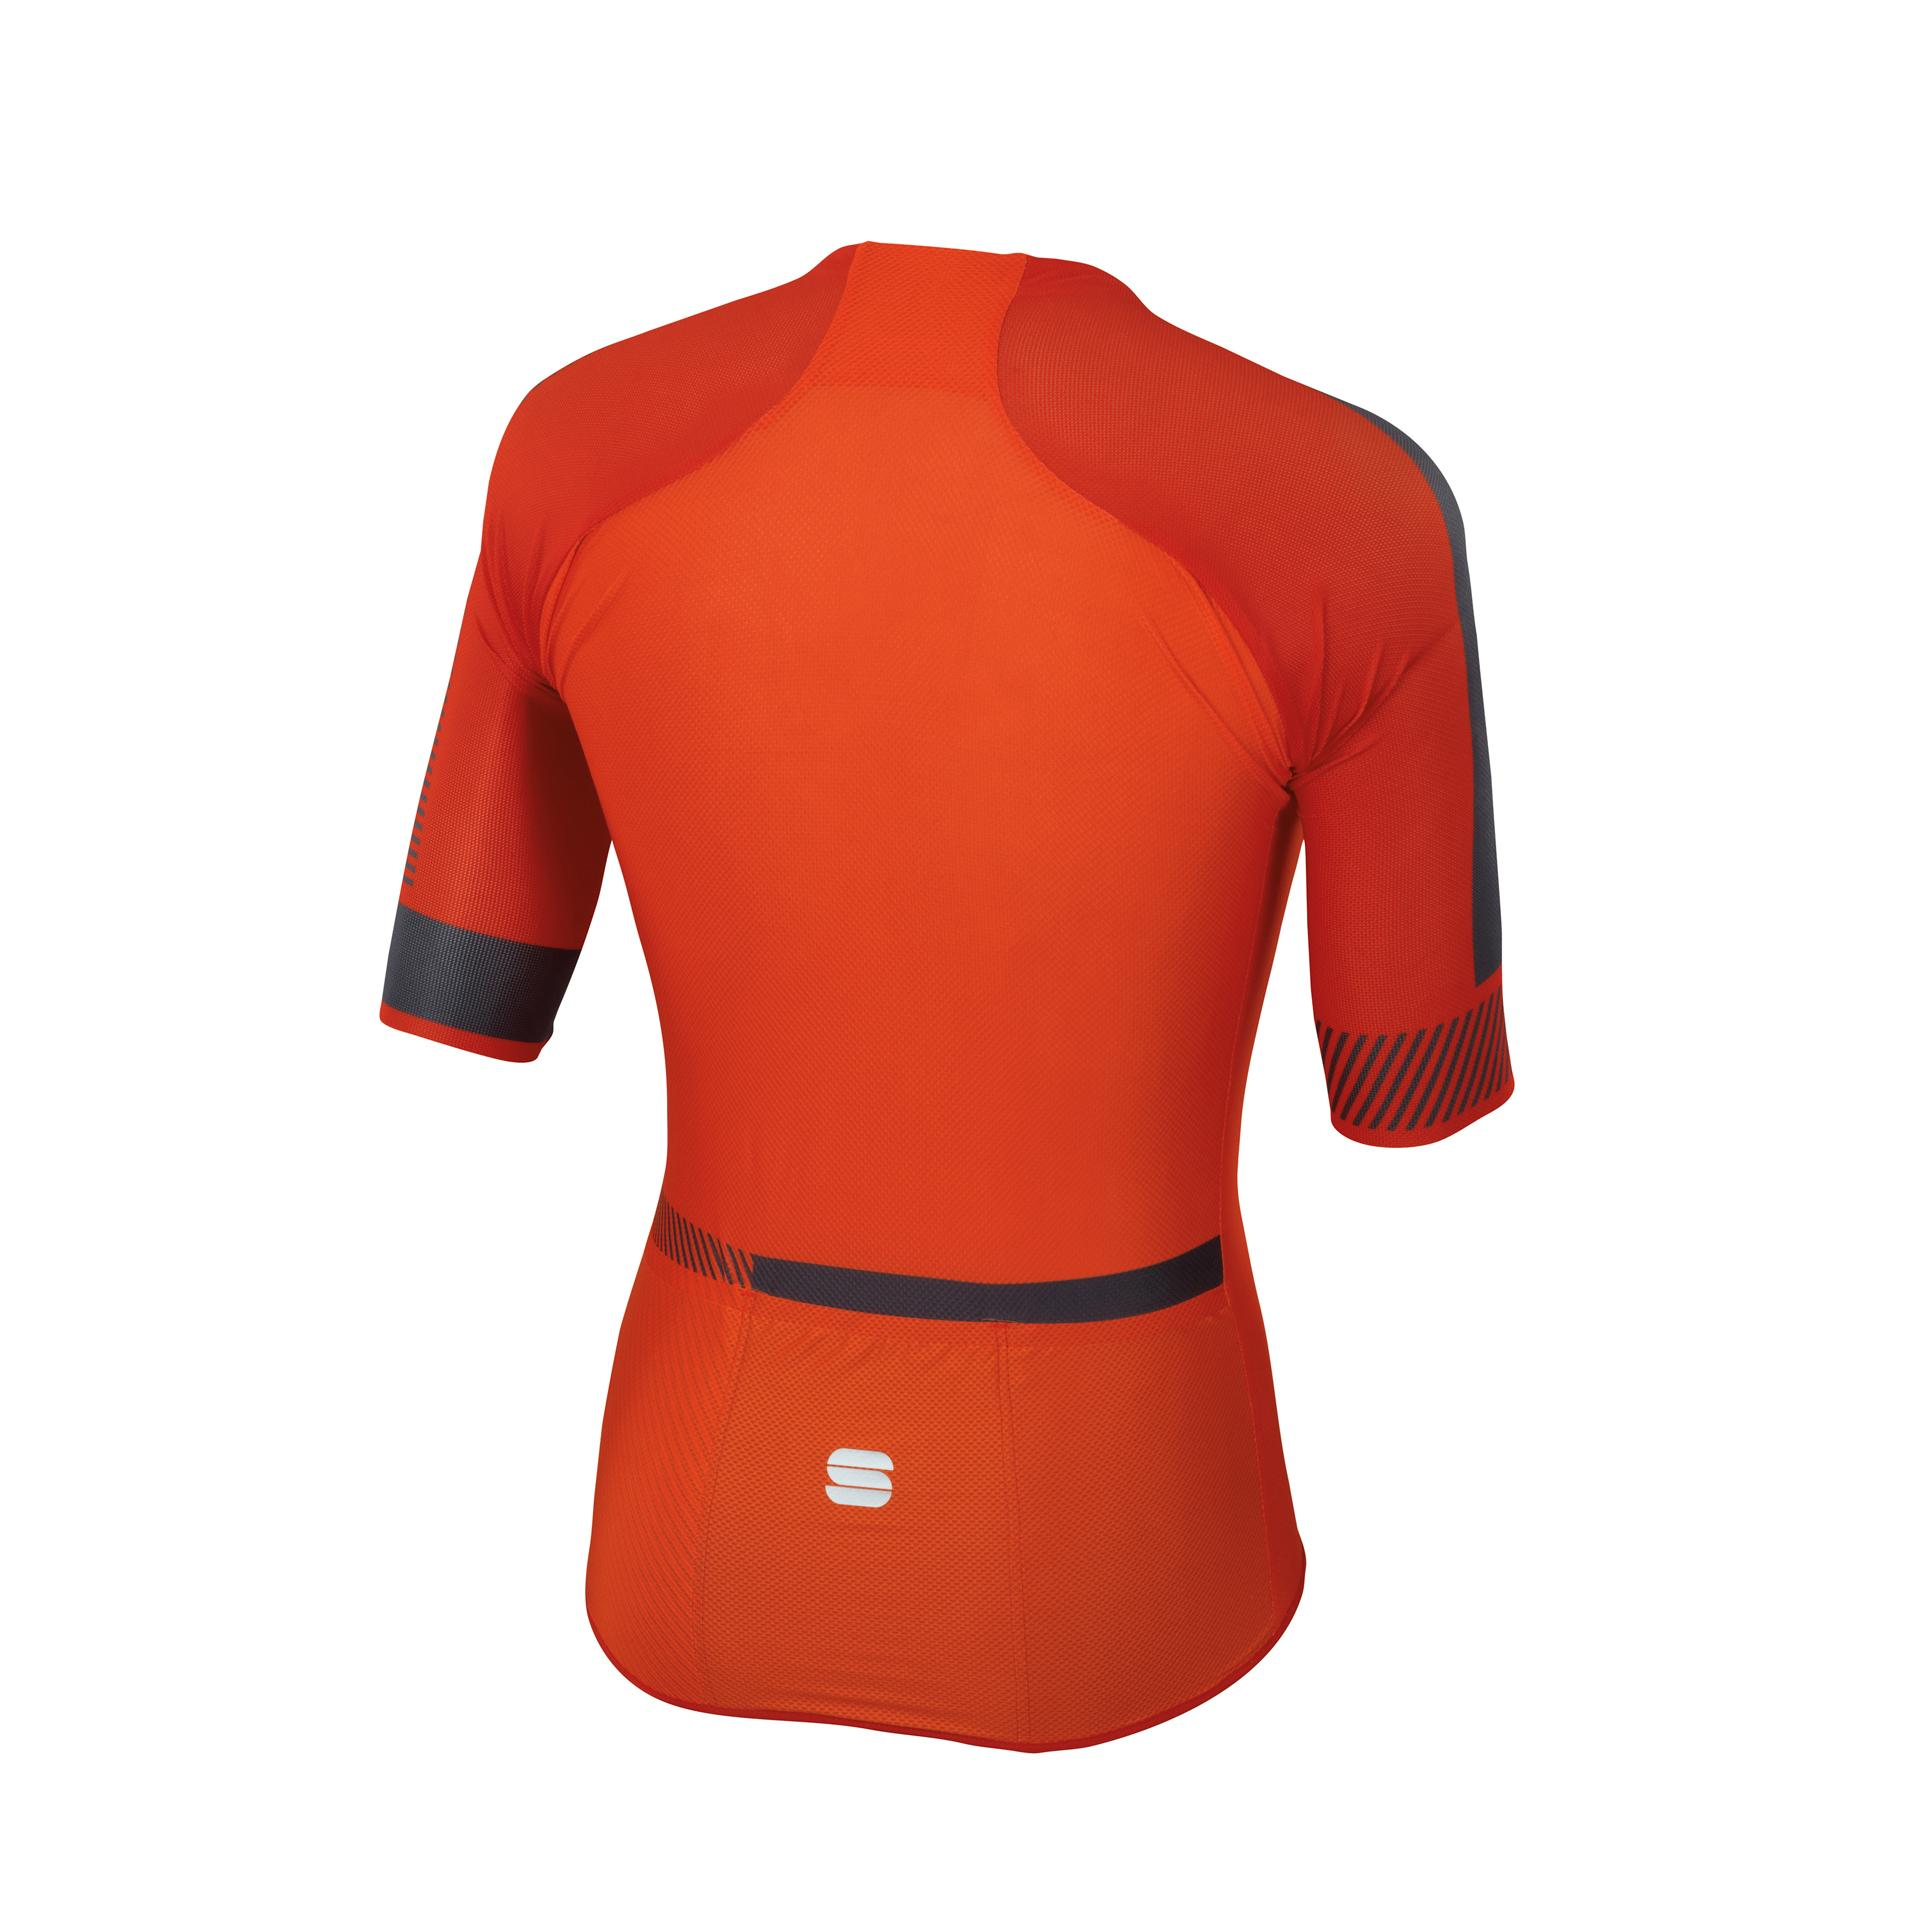 Sportful Fietsshirt korte mouwen Heren Oranje Rood / SF Bodyfit Pro 2.0 Light Jersey-Orange Sdr/Fire Red